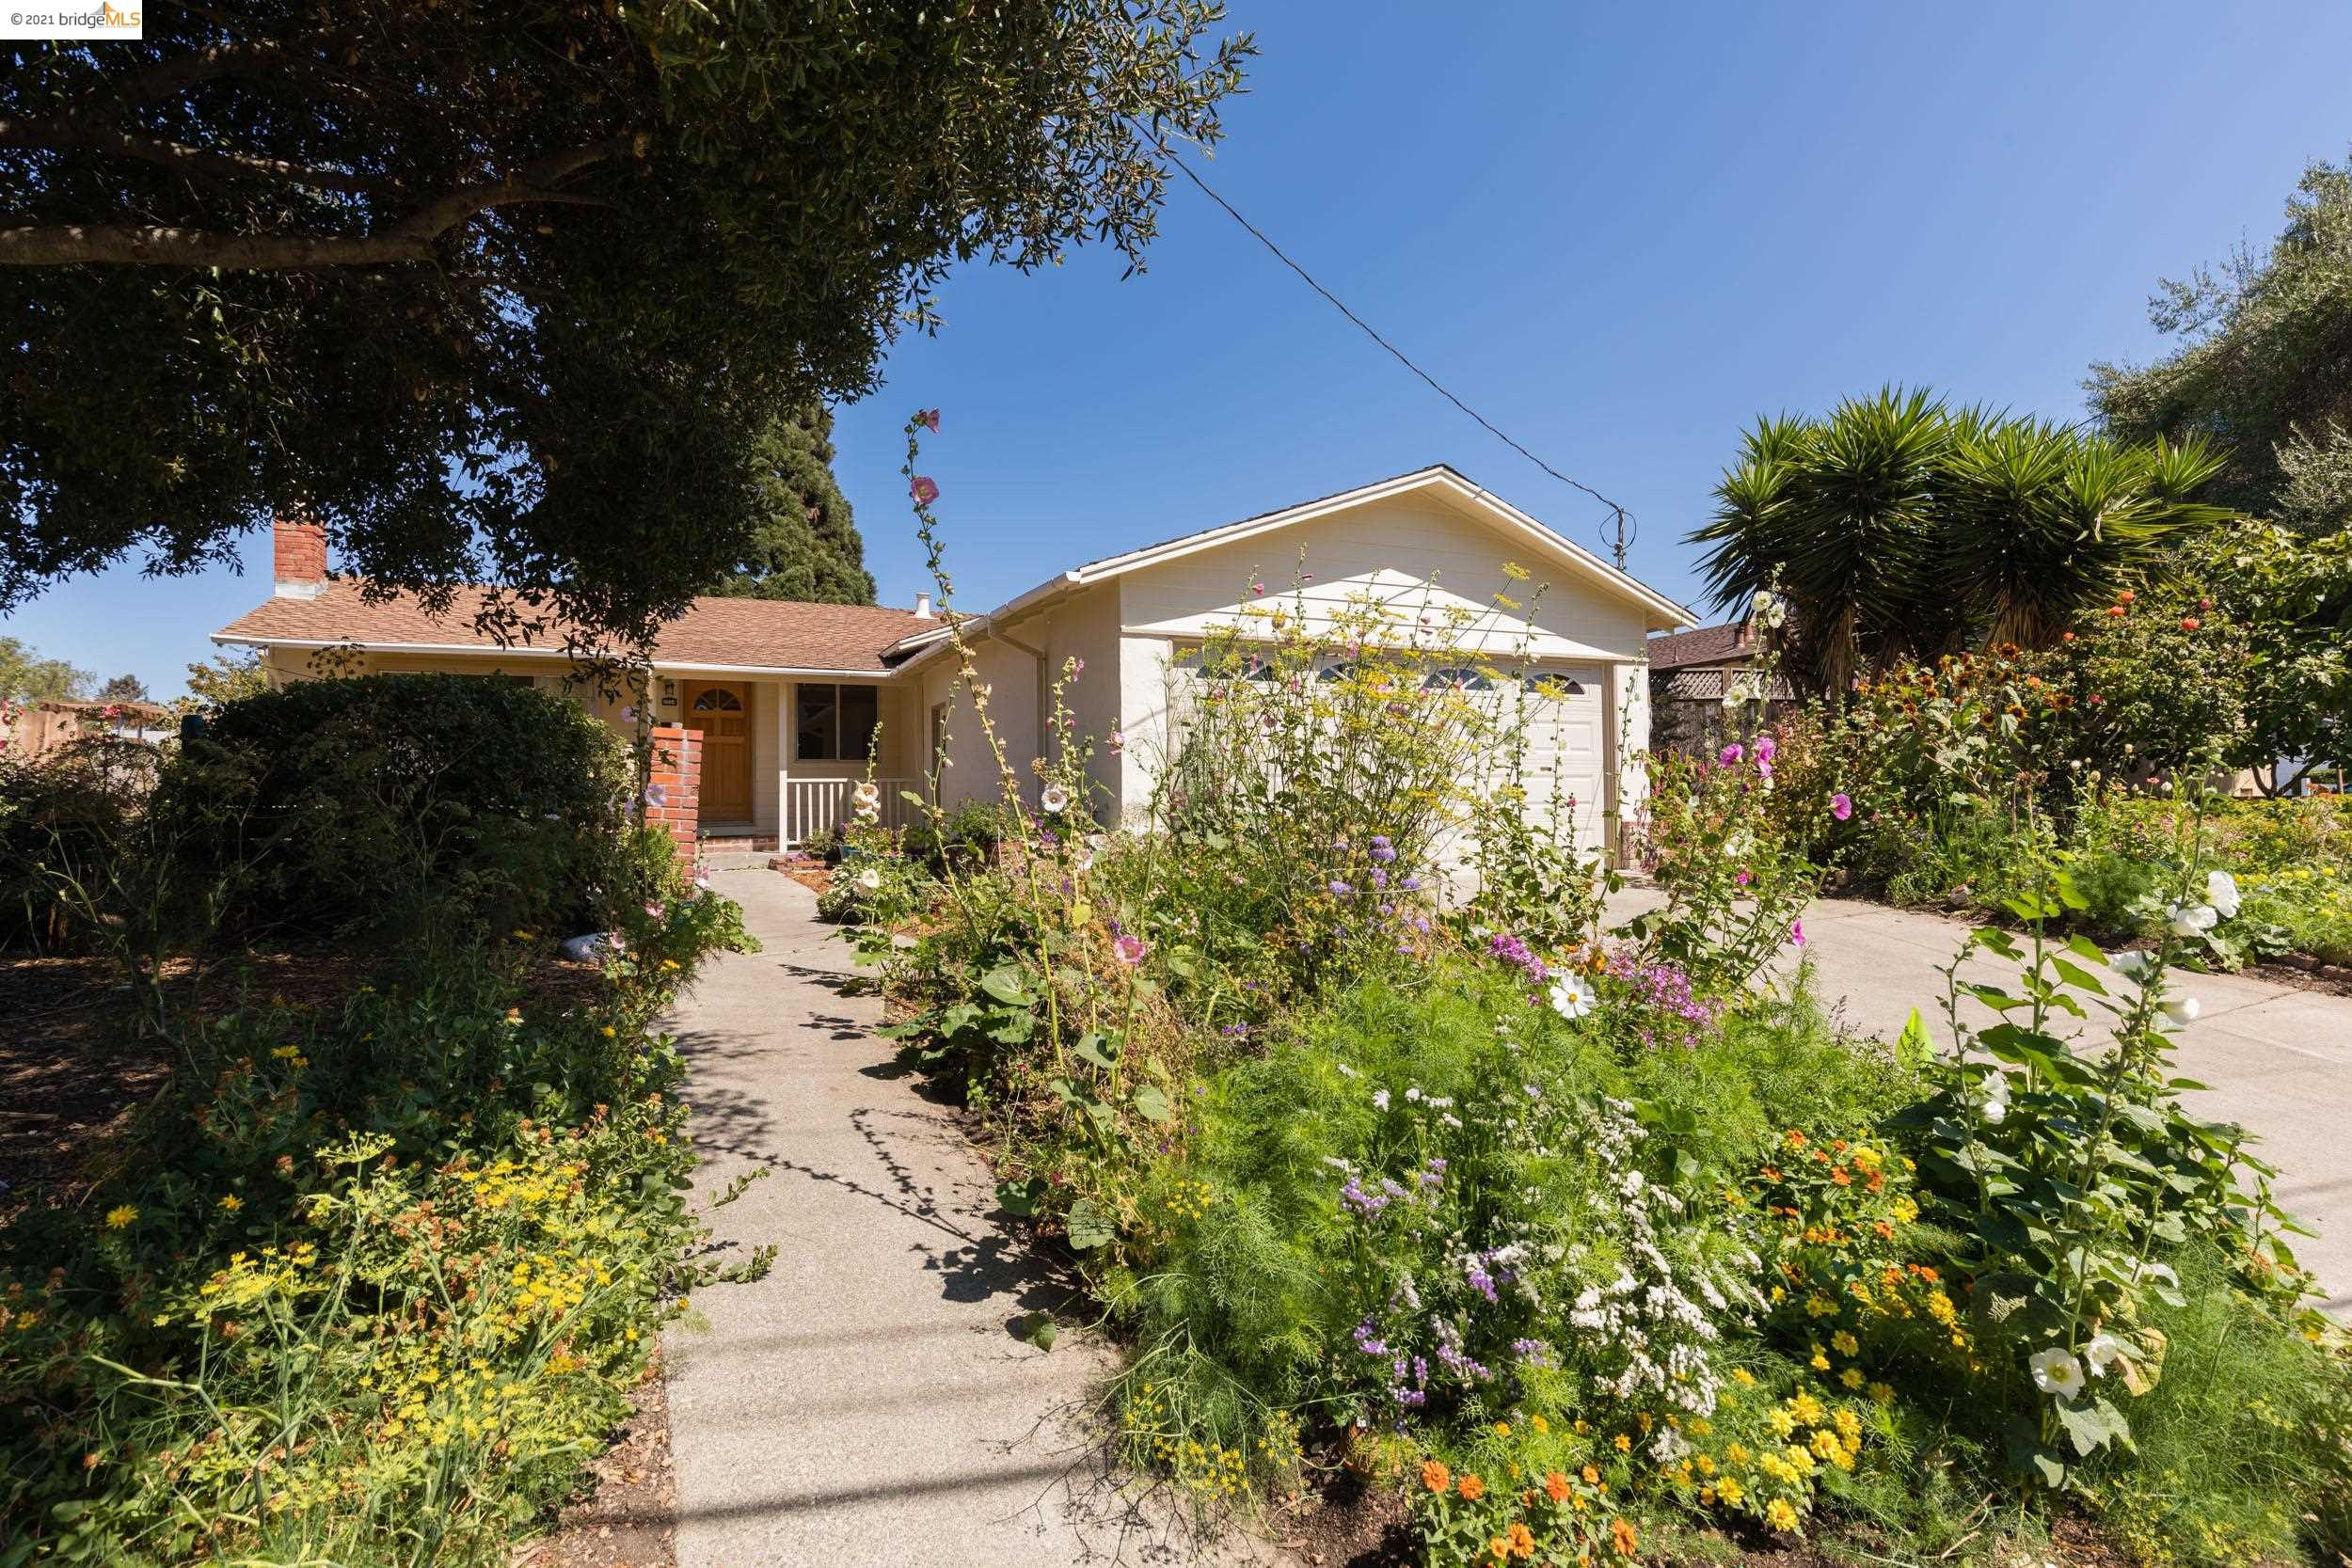 Wonderful Tara Hills 4-bdrm, 2 bath rancher with fabulous gardens! Comfortable floorplan, starting with a big living room with fireplace. Friendly and spacious kitchen-dining area combination. Large primary suite with a private bath and 2 closets. Convenient laundry closet inside. Big windows with views into the gardens let natural light flood throughout the house. Well-established pollinator friendly plantings all around the gardens. Two handsome trees grace the yards, one in front and one in back. Huge garage with convenient roll-up door. Close to schools, shopping and transportation. Sewer compliant! Pride of ownership! Don't miss this one!